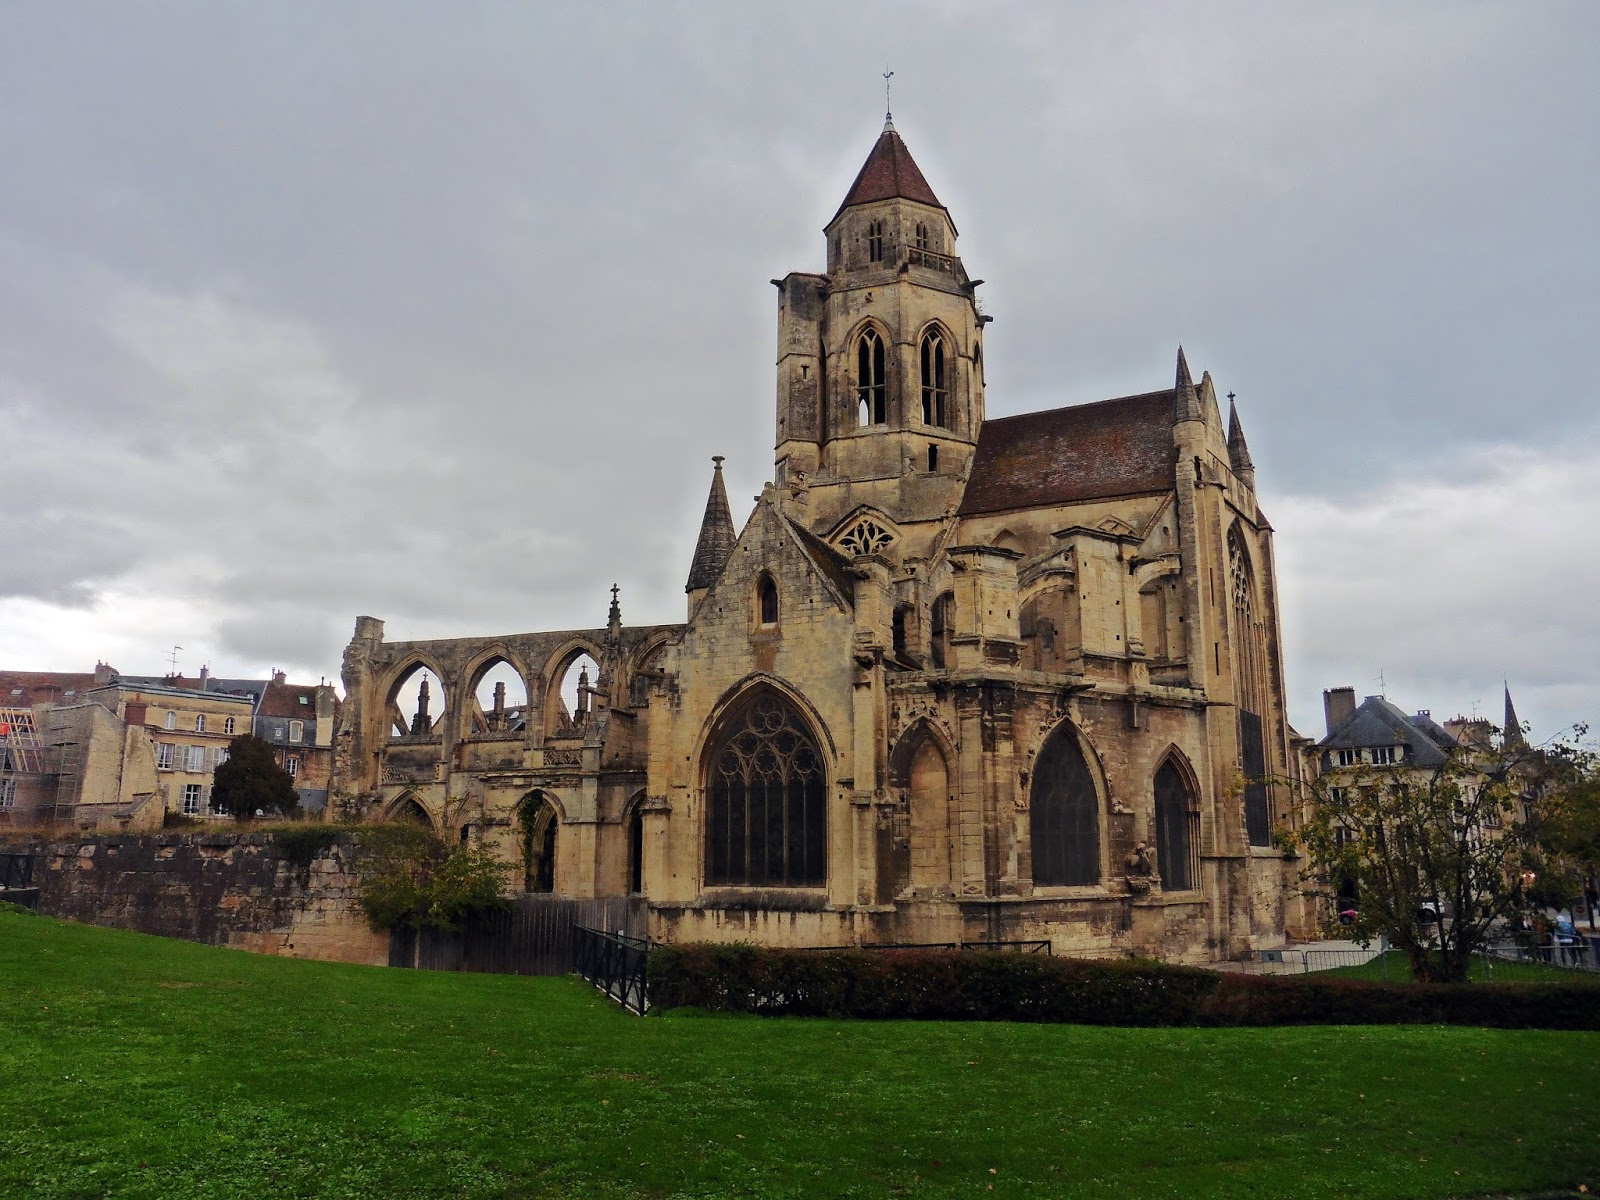 Saint Etienne-le-Vieux in Caen, France